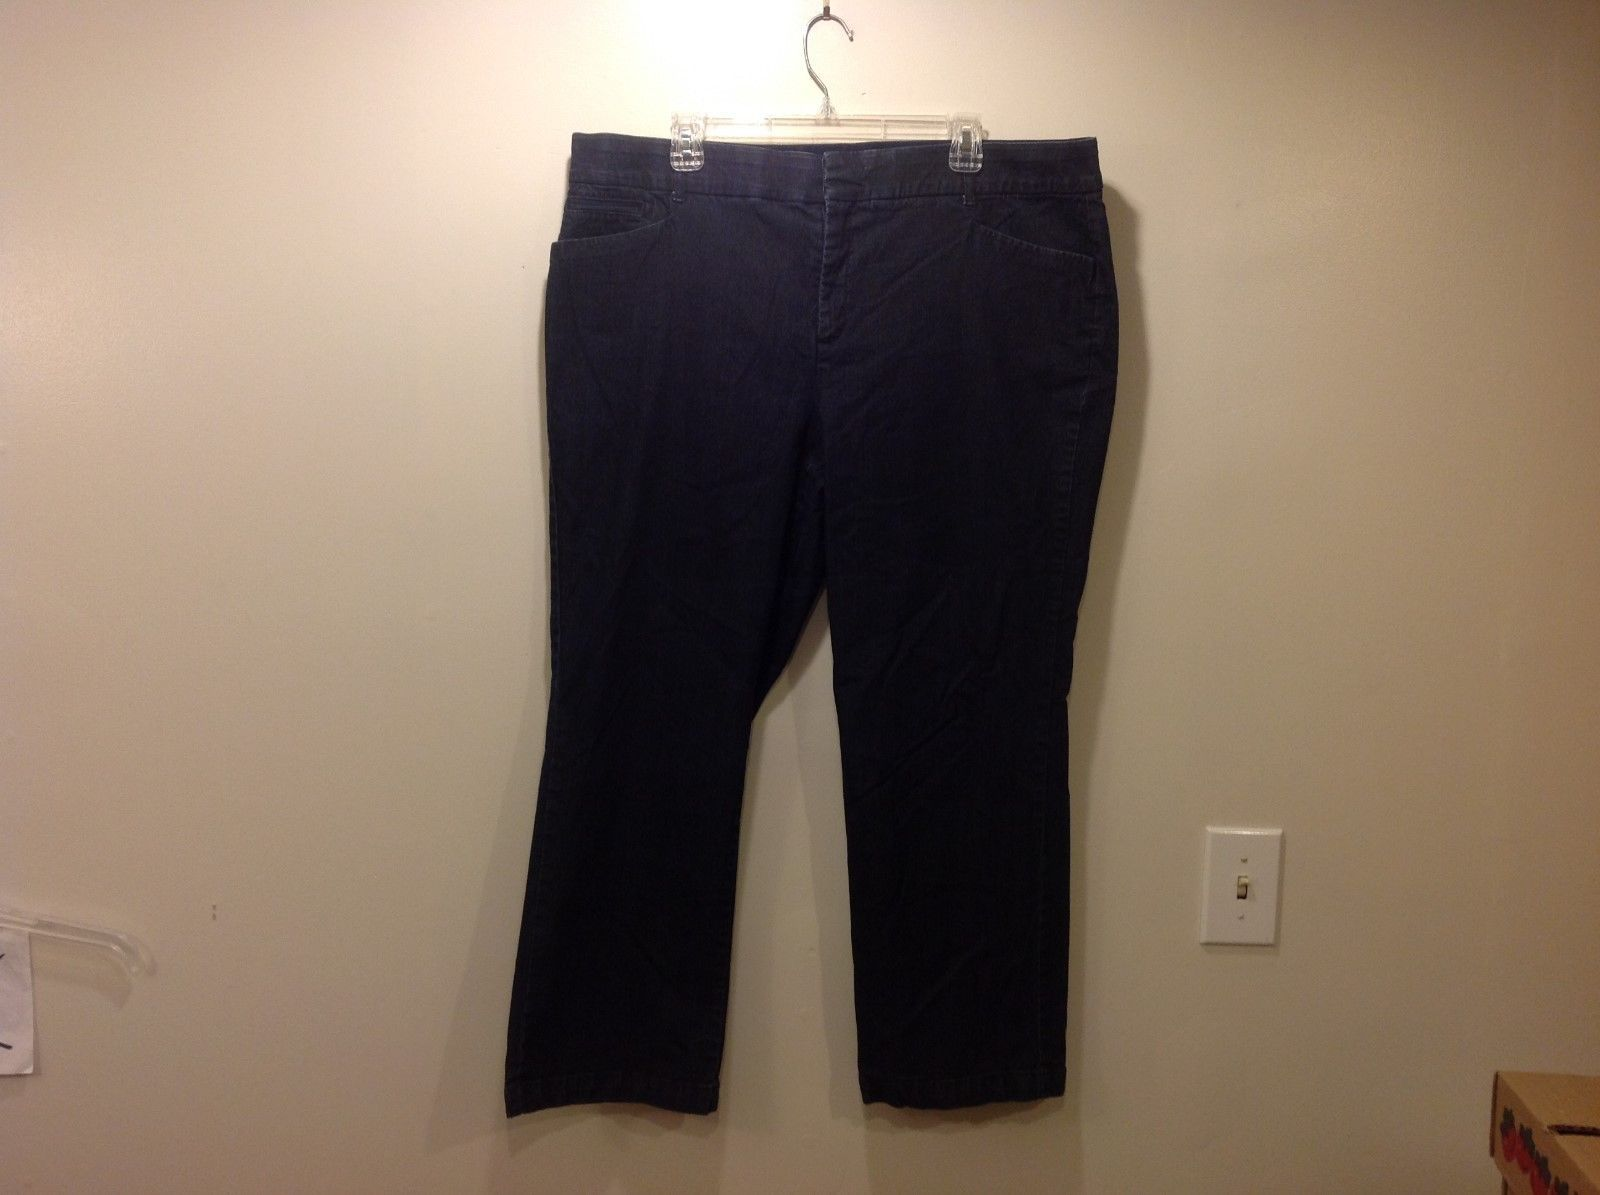 JM Collection Woman's Dark Capri Jeans Sz 20WP